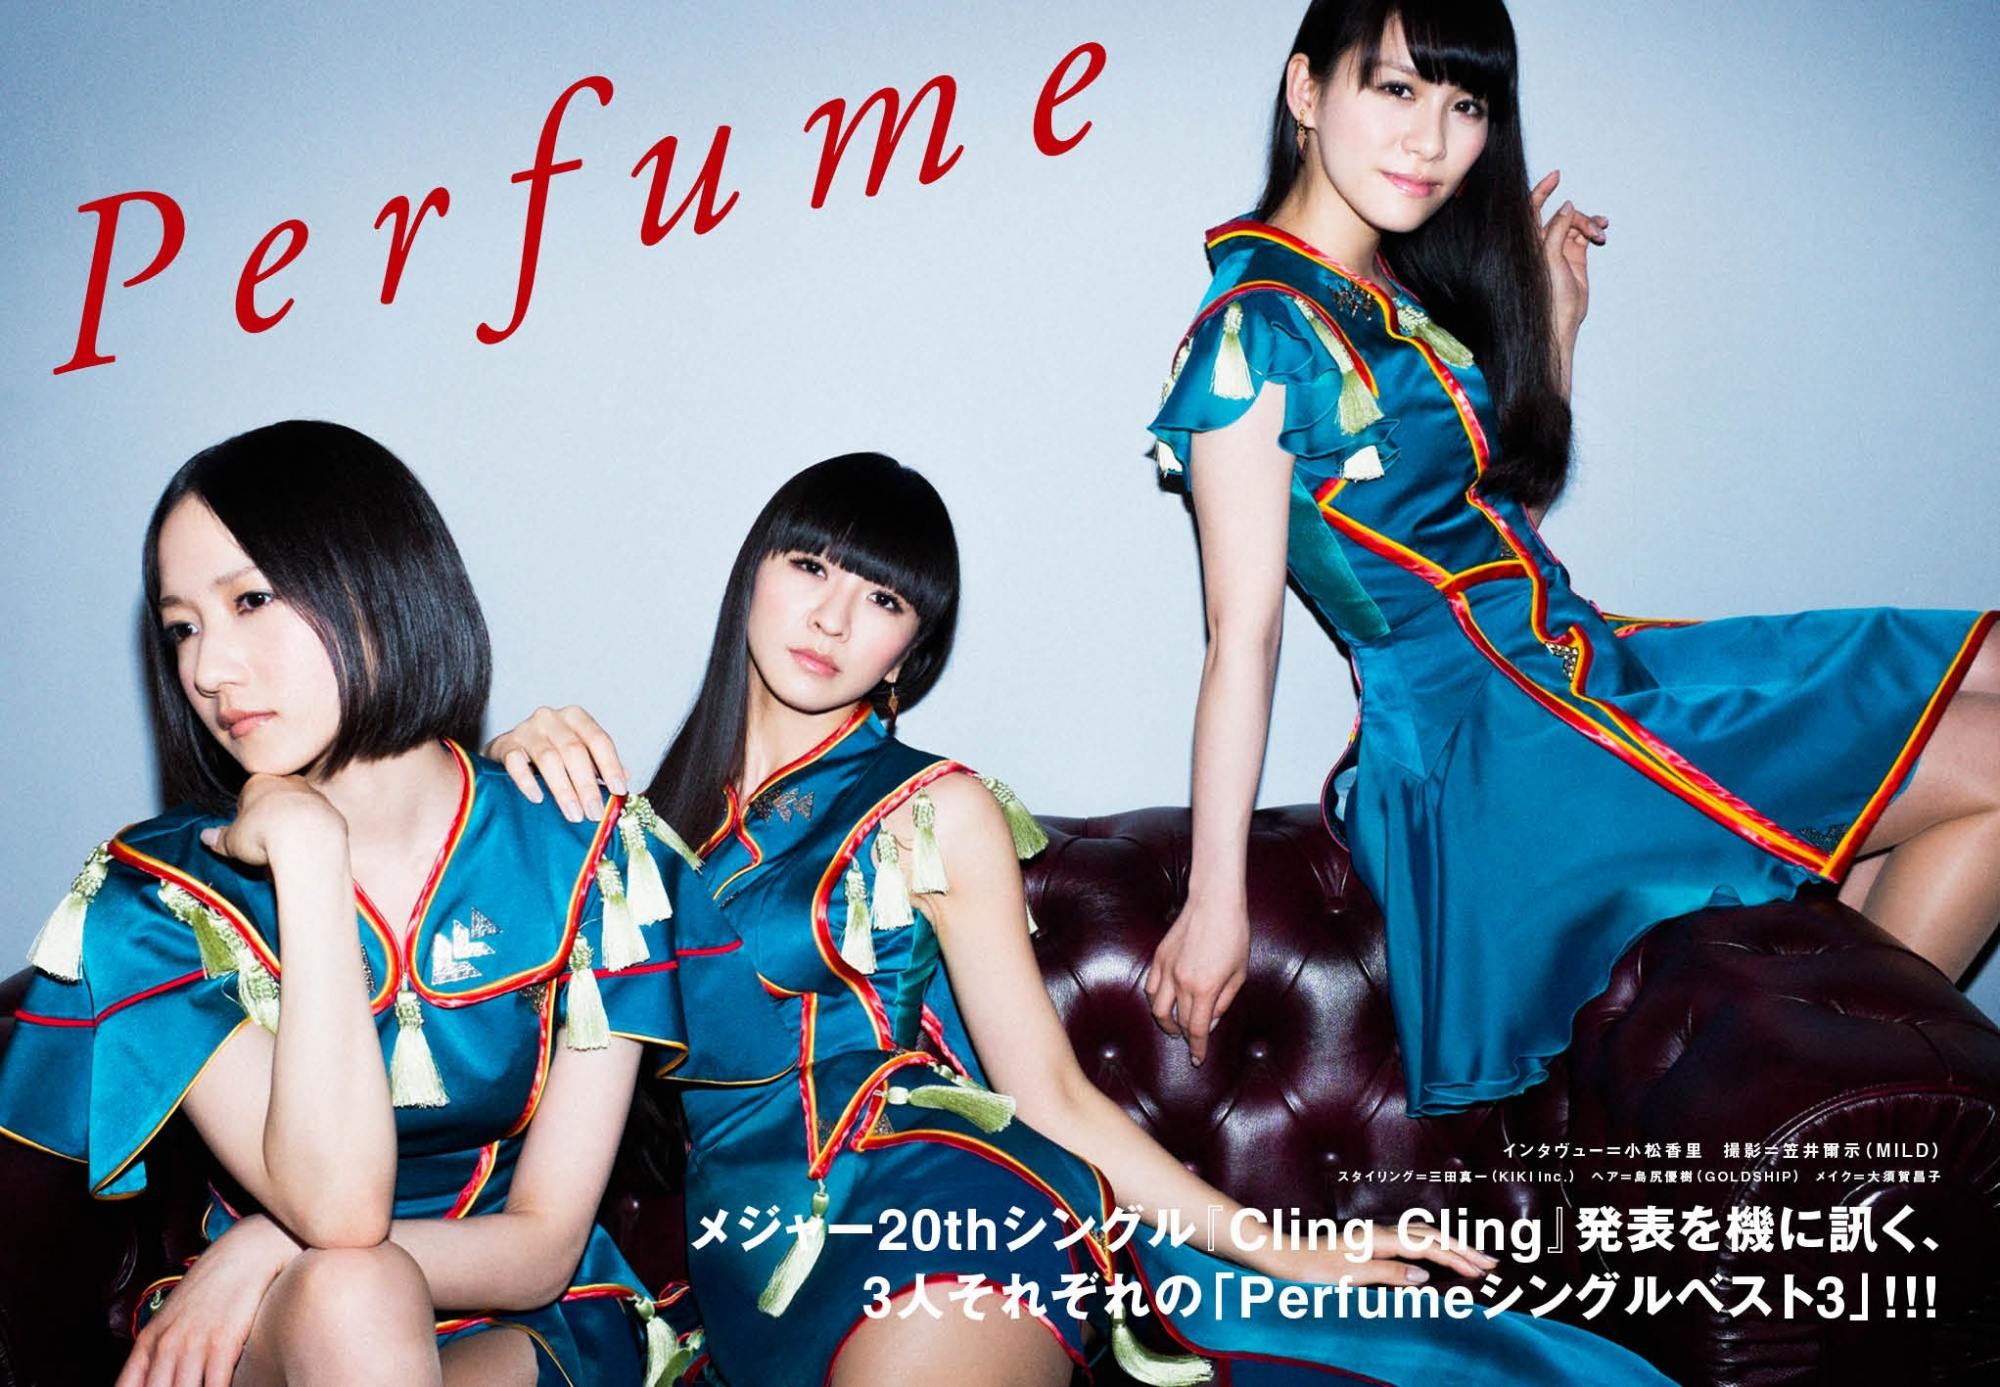 Perfume Group 33556 Asiachan